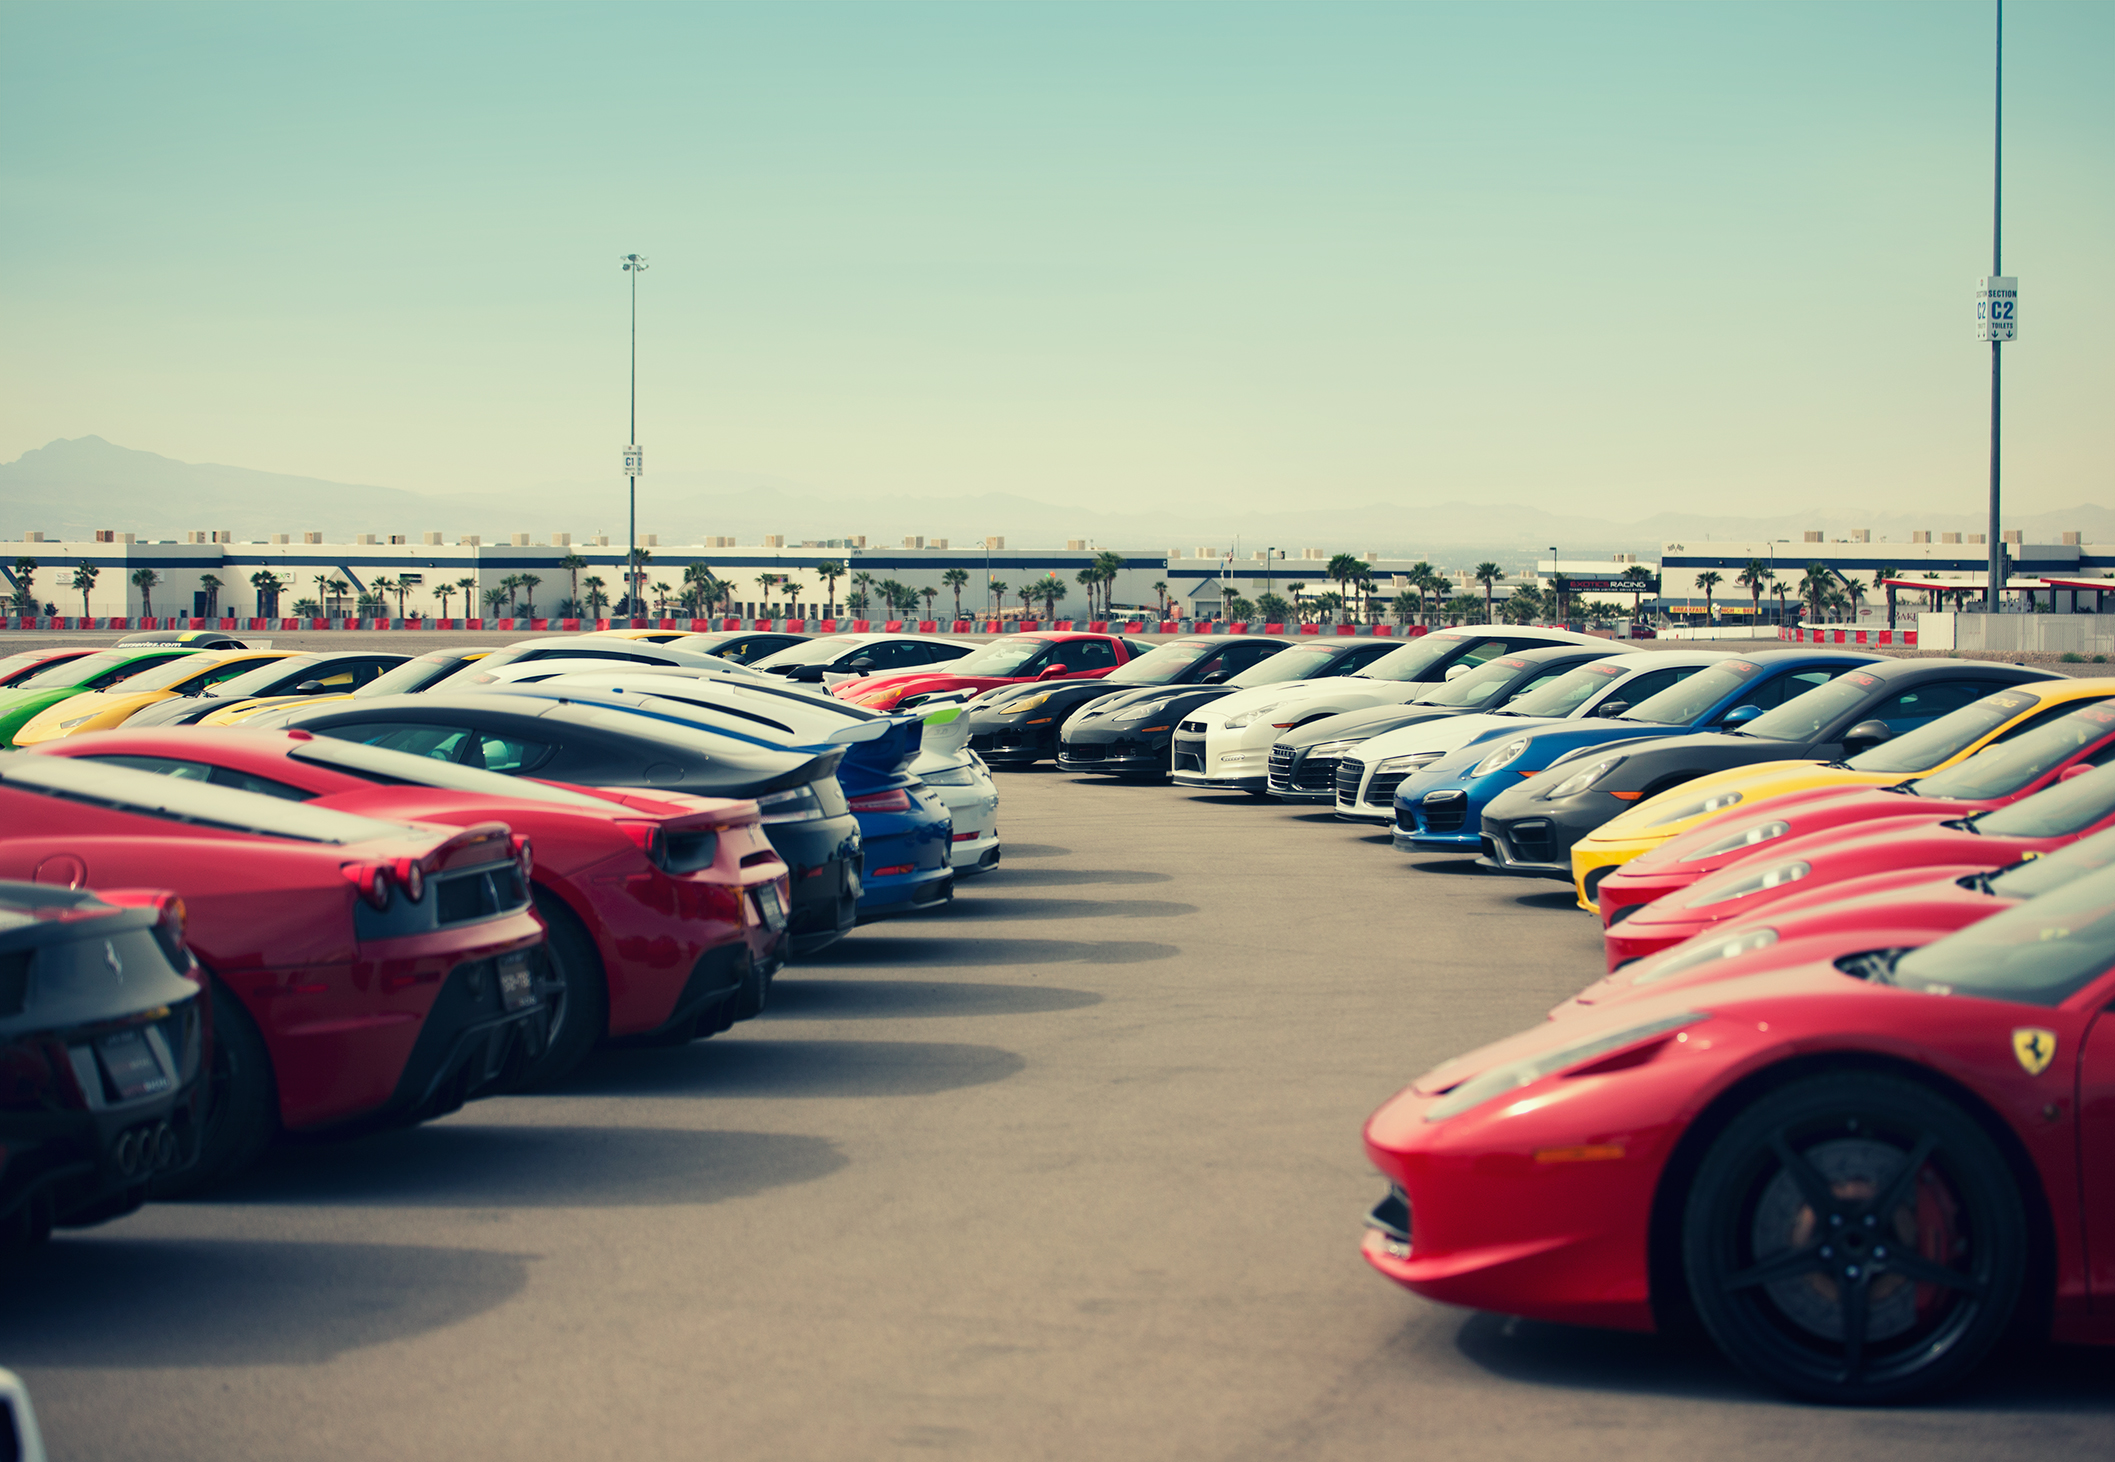 Largest Fleet of Exotic Cars in the World1.jpg